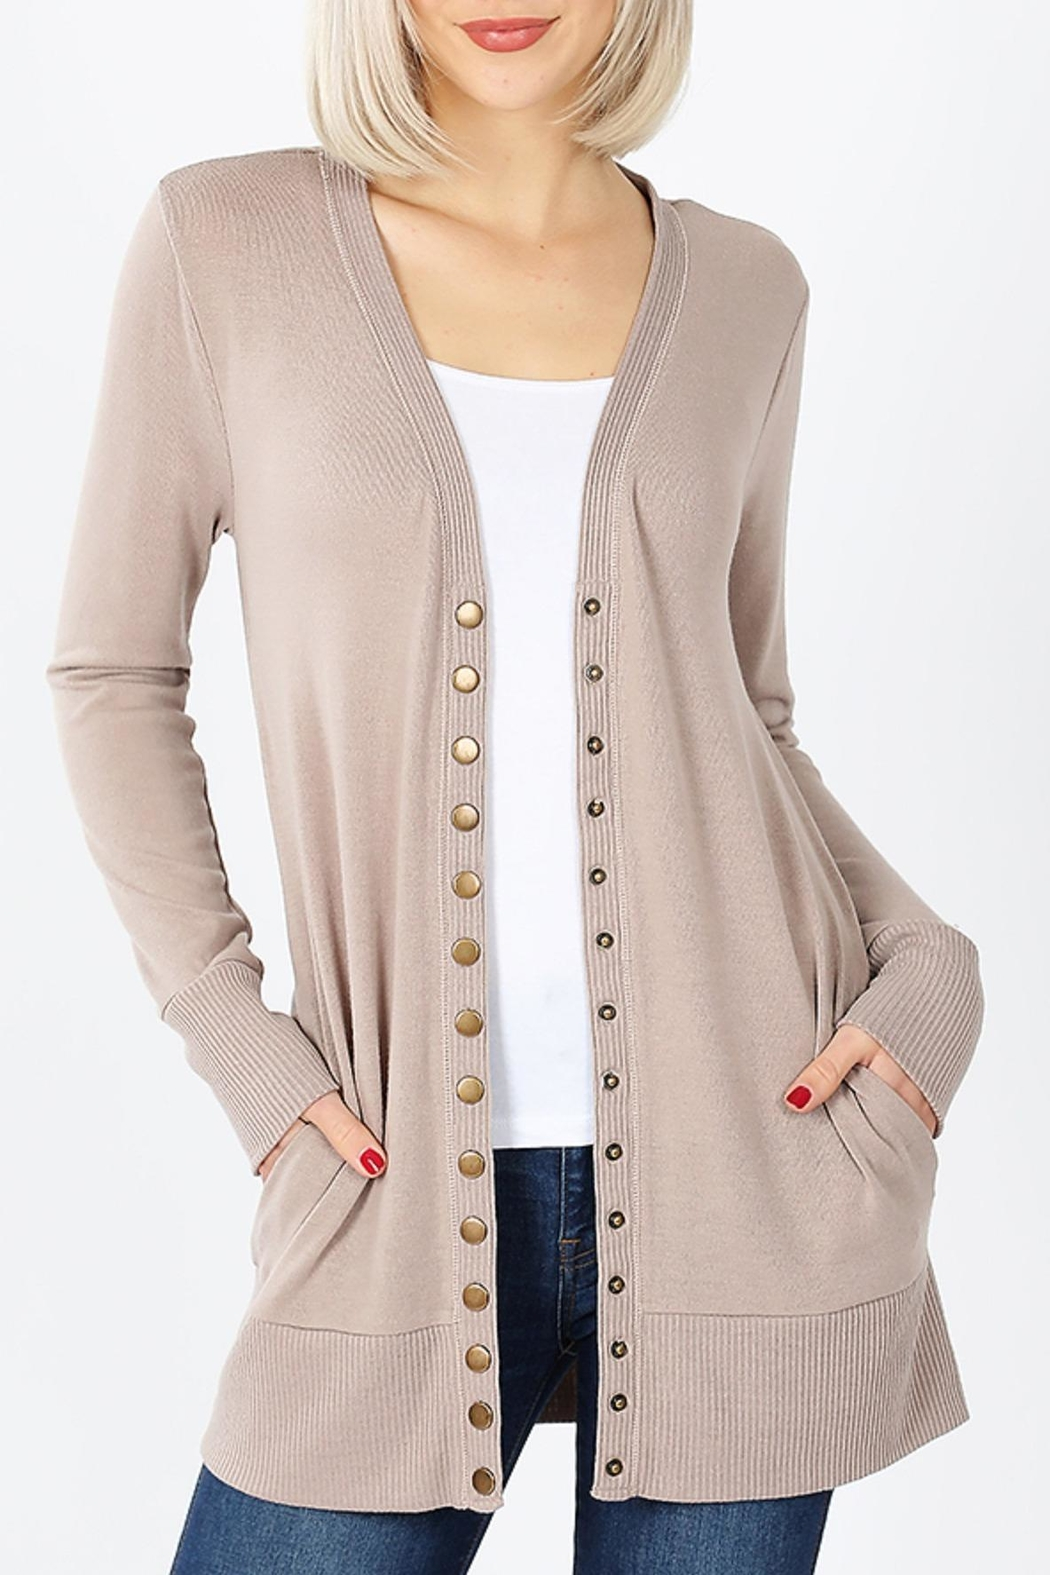 Zenana Outfitters Snap-Button Sweater Cardigan - Main Image